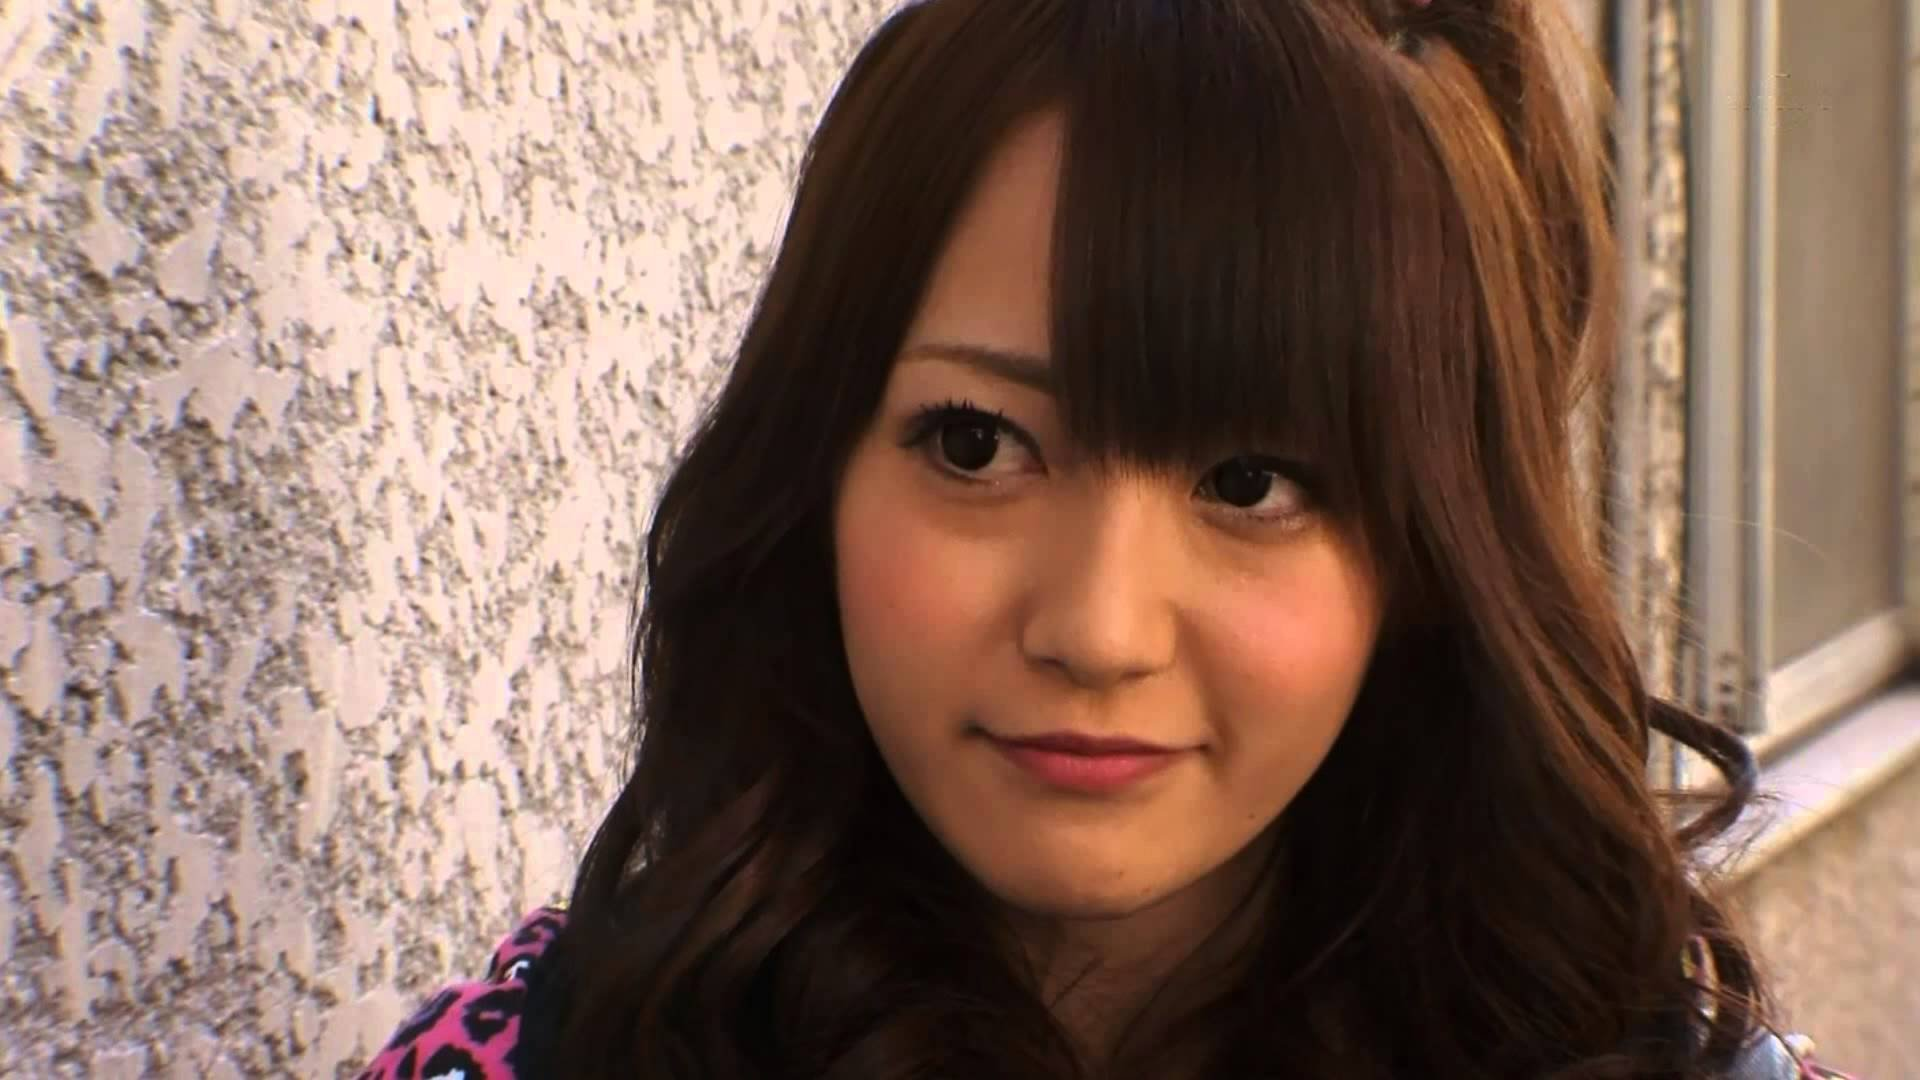 former-akb-48-%c2%b7-expectation-for-future-as-voice-actor-of-sato-ami_maxresdefault